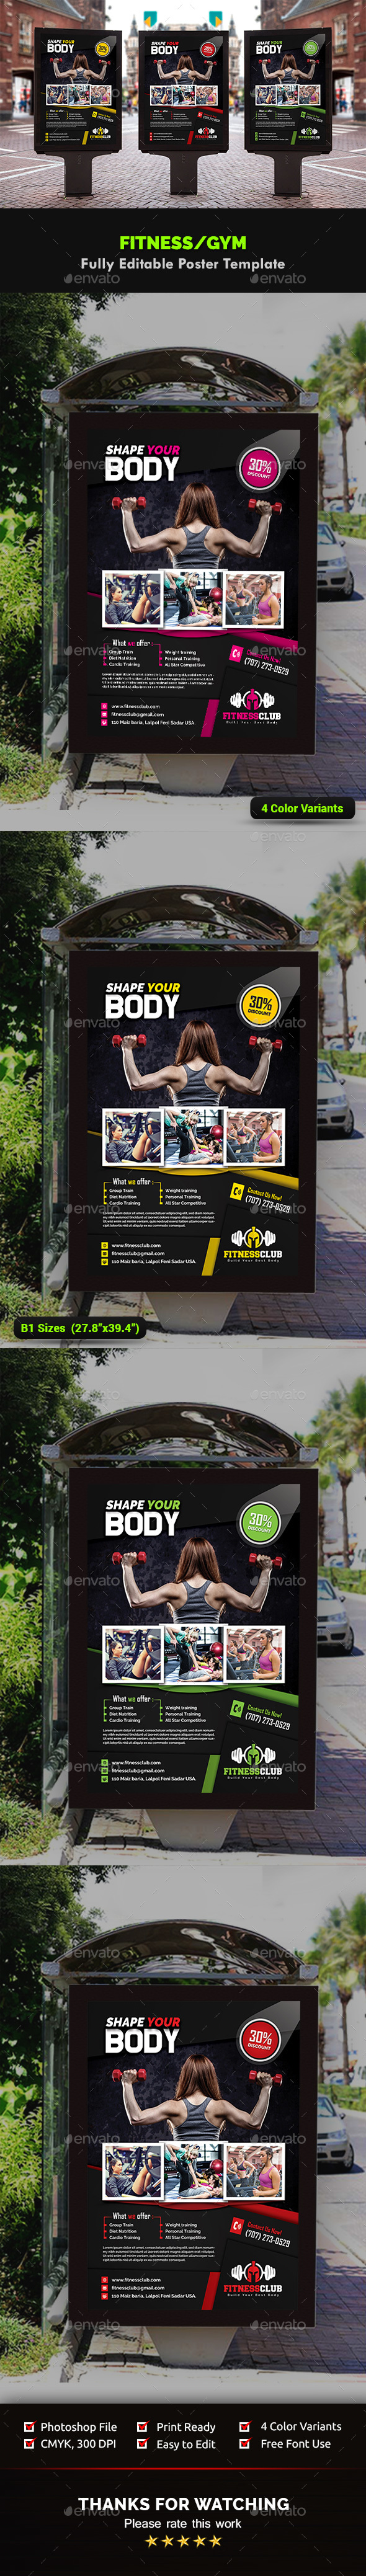 Fitness / Gym Poster Templates - Signage Print Templates